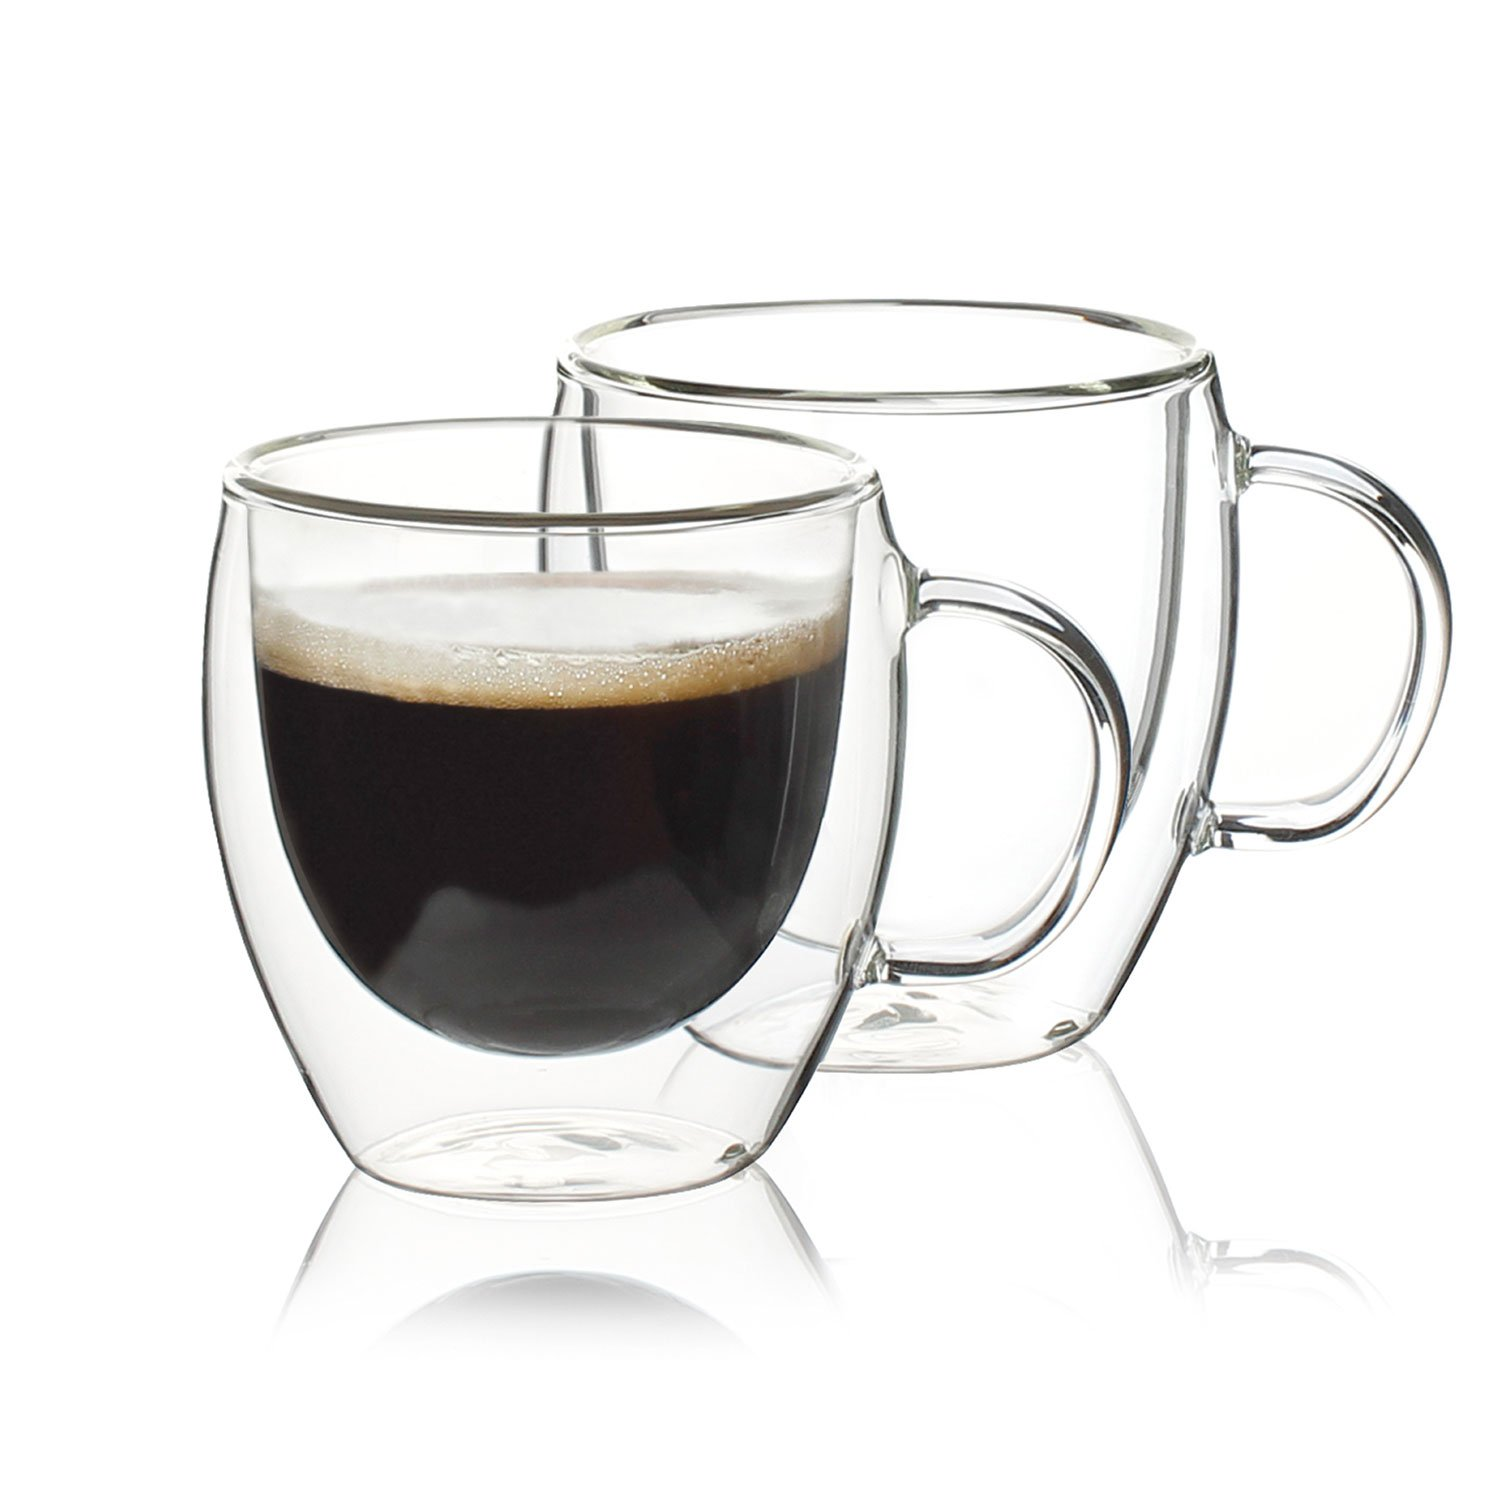 Sweese 4801 Porcelain Mugs - Mug Set with Gold Trim Black Speckled, Ceramic Mugs for Coffee, Tea, Cocoa and Mulled Drinks , 11 Ounces, Set of 4